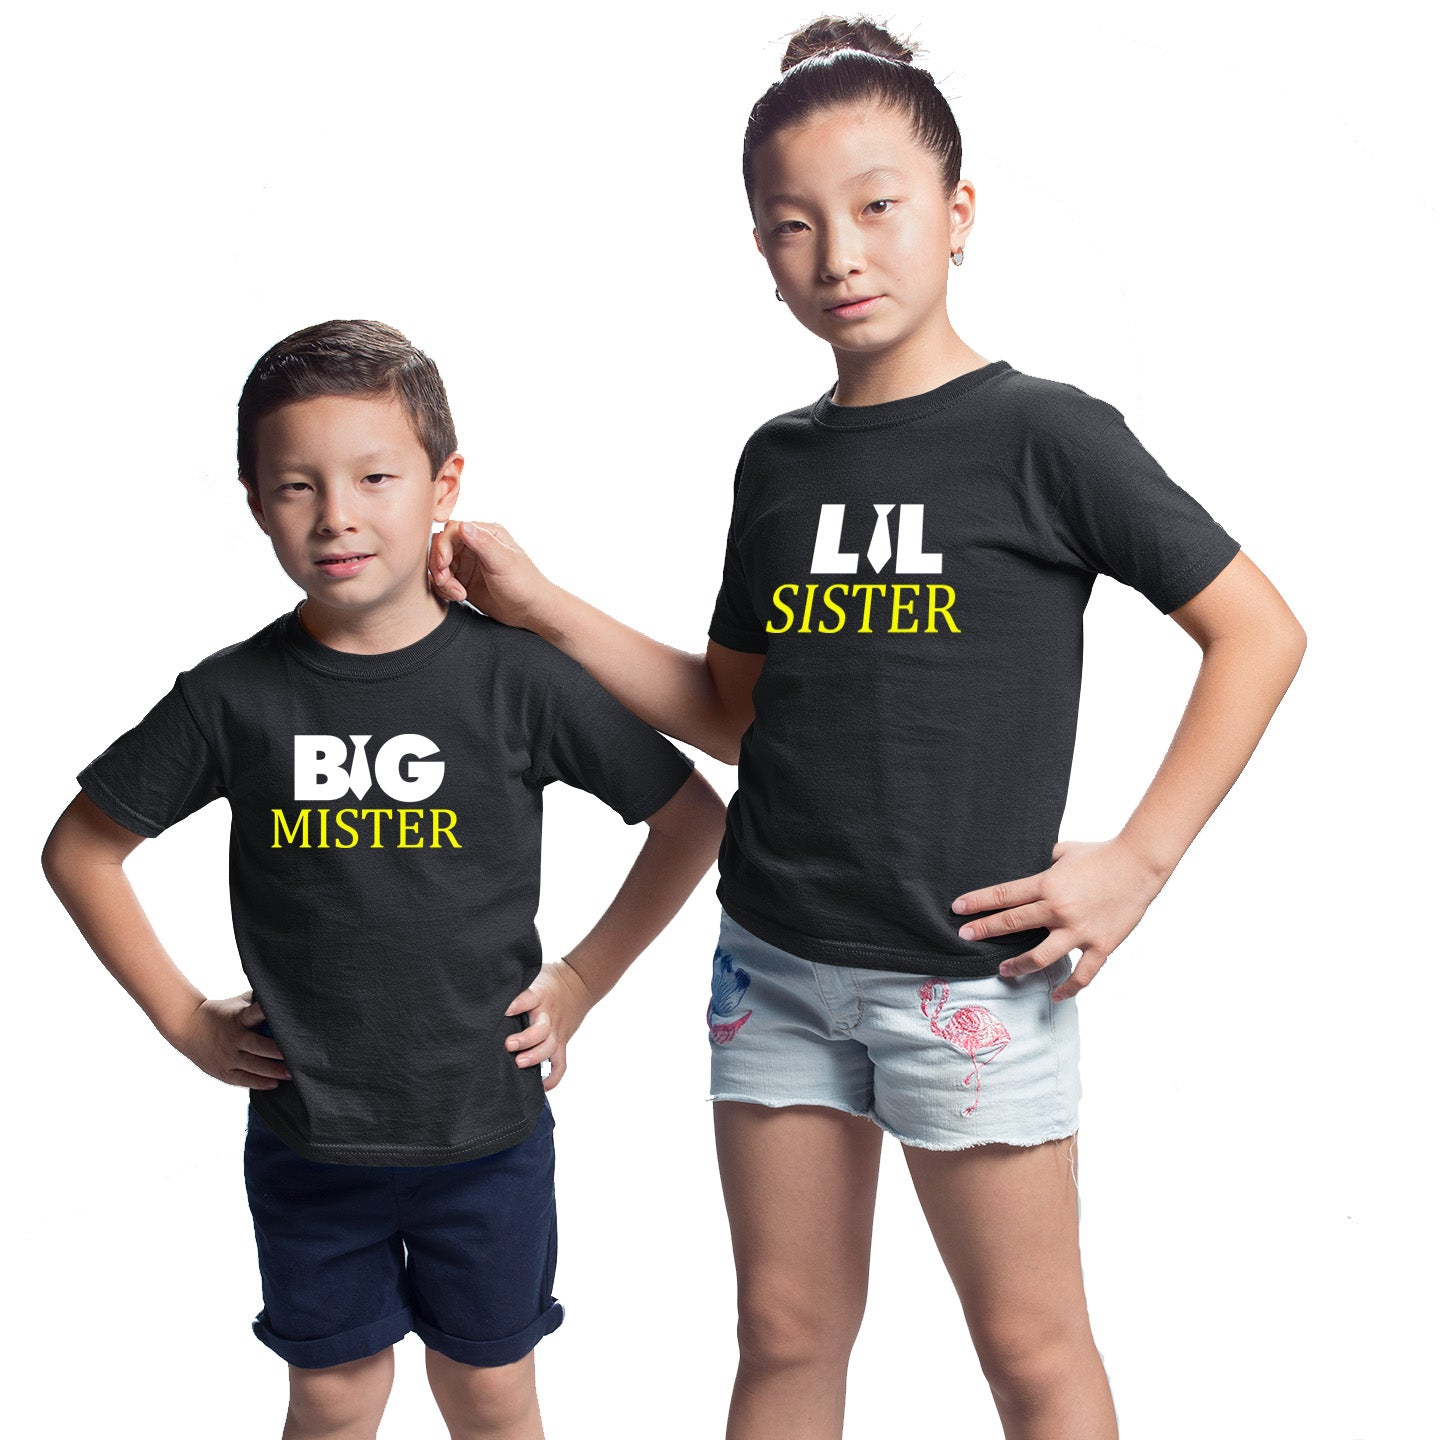 Sprinklecart Big Mister Lil Sister Printed Matching T Shirts Pack of 2 Black Cotton T Shirts